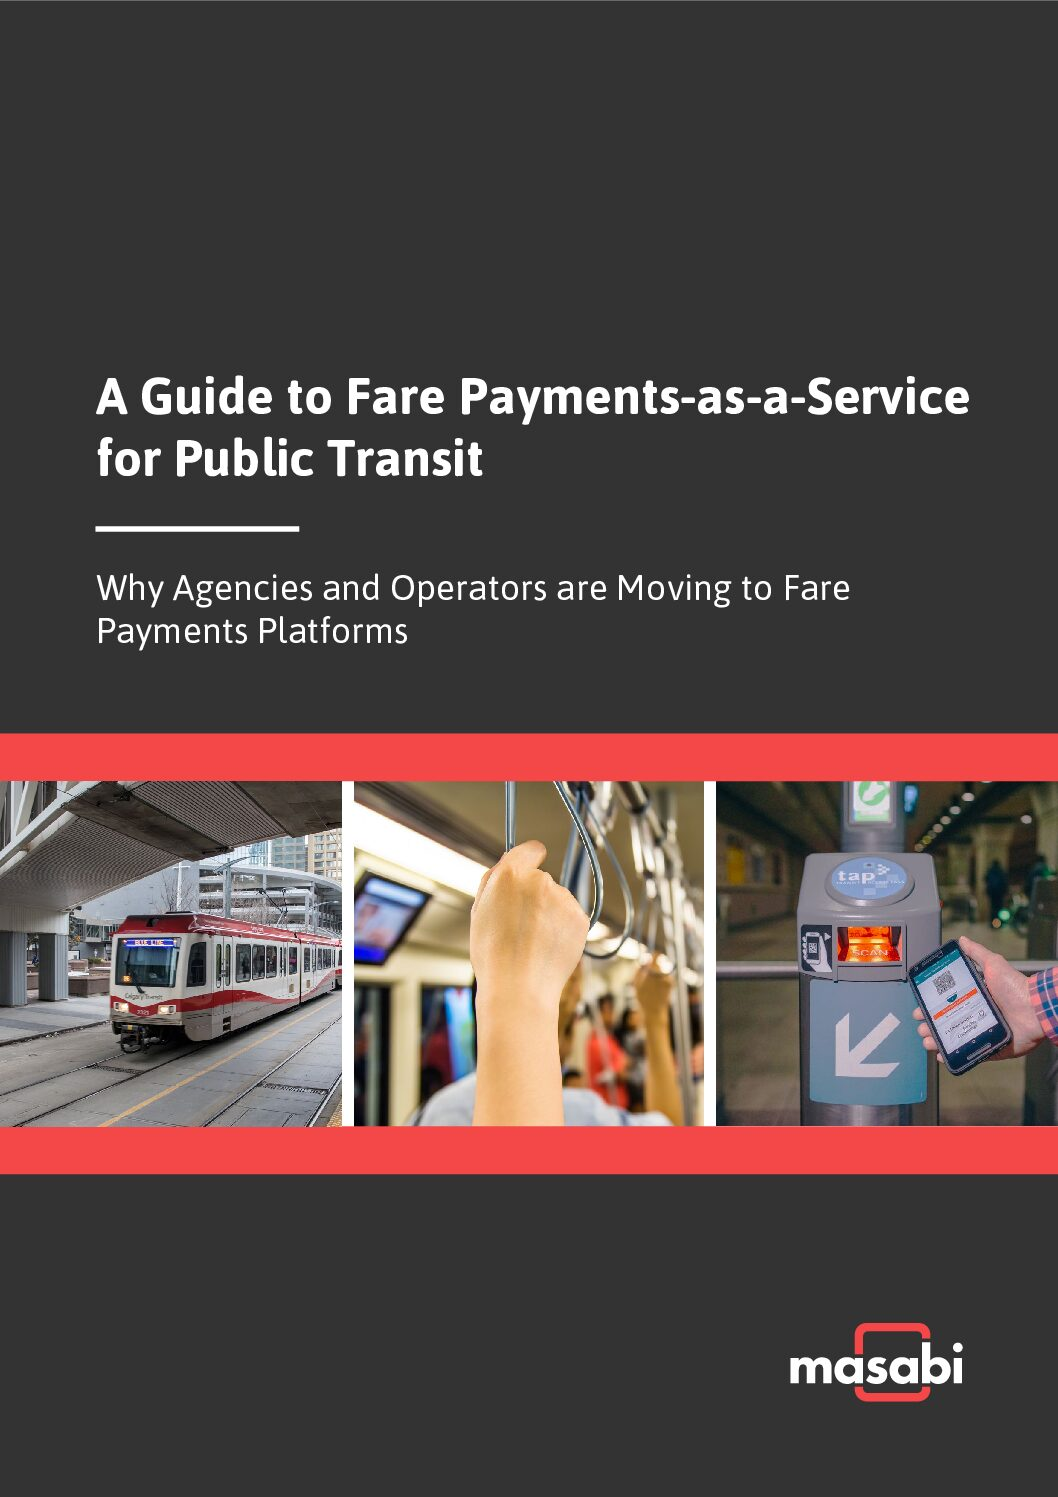 A Guide to Fare Payments-as-a-Service for Public Transit